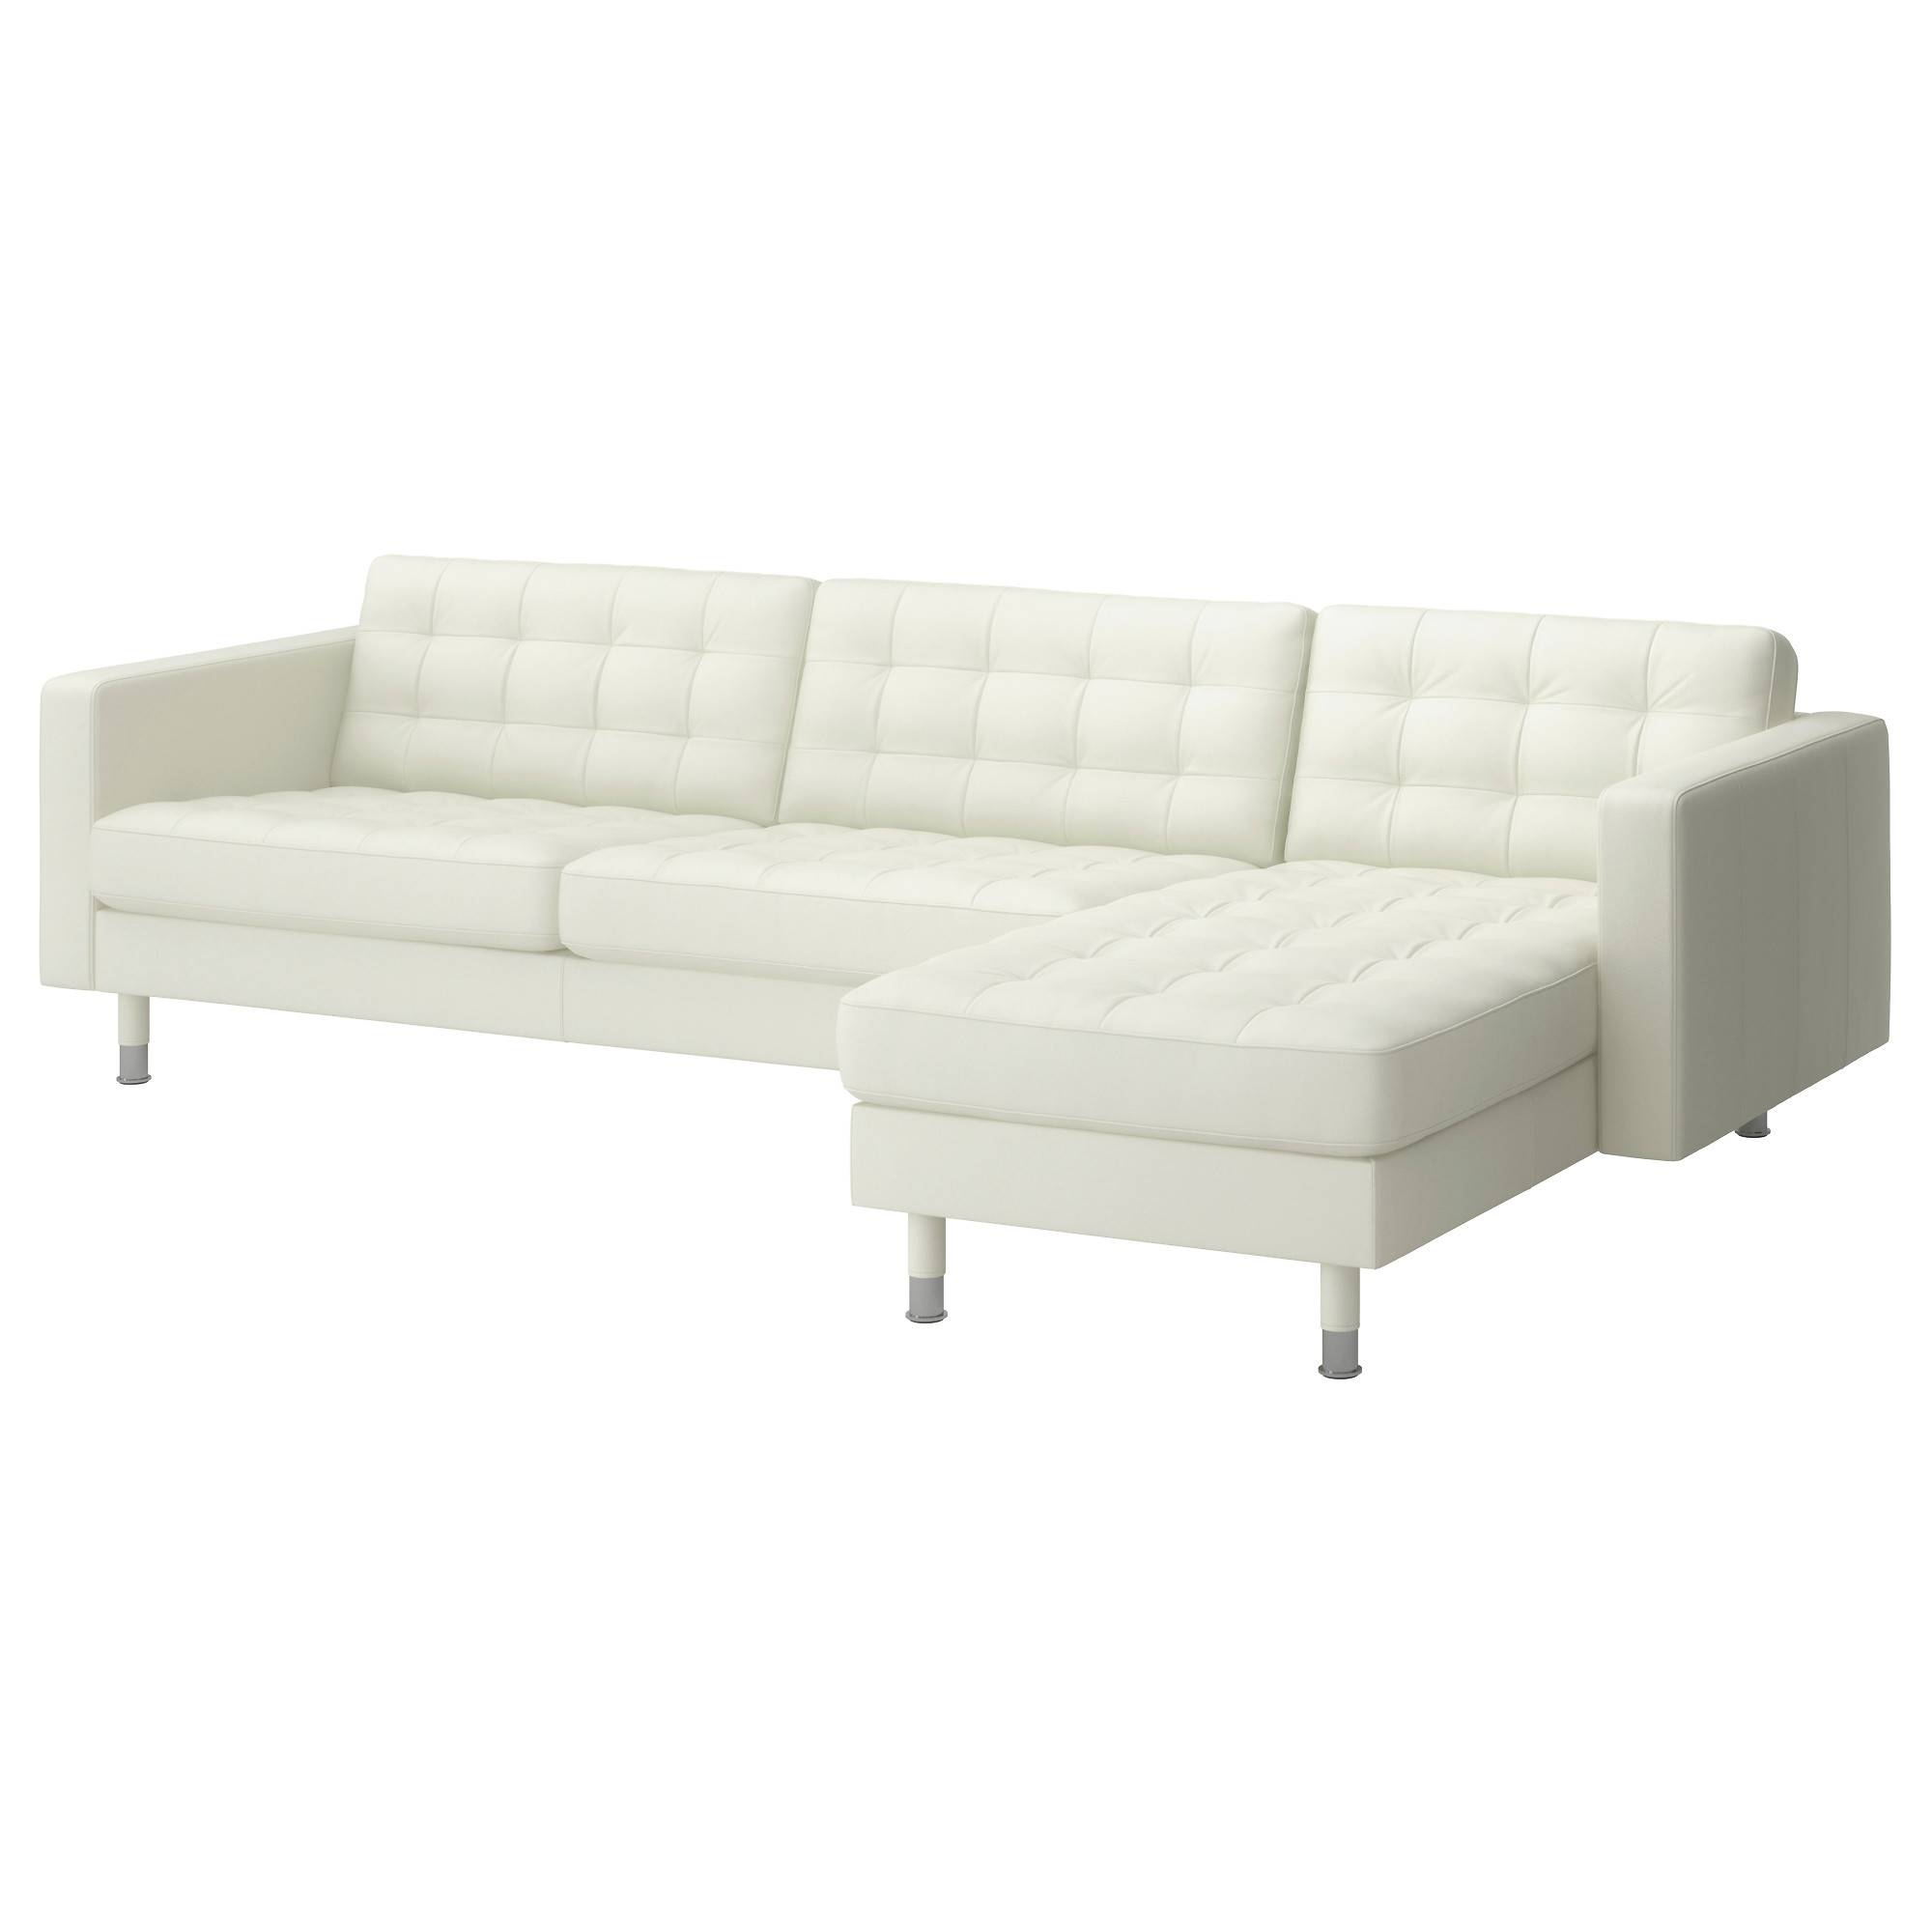 Leather & Faux Leather Couches, Chairs & Ottomans - Ikea for White Leather Sofas (Image 9 of 30)